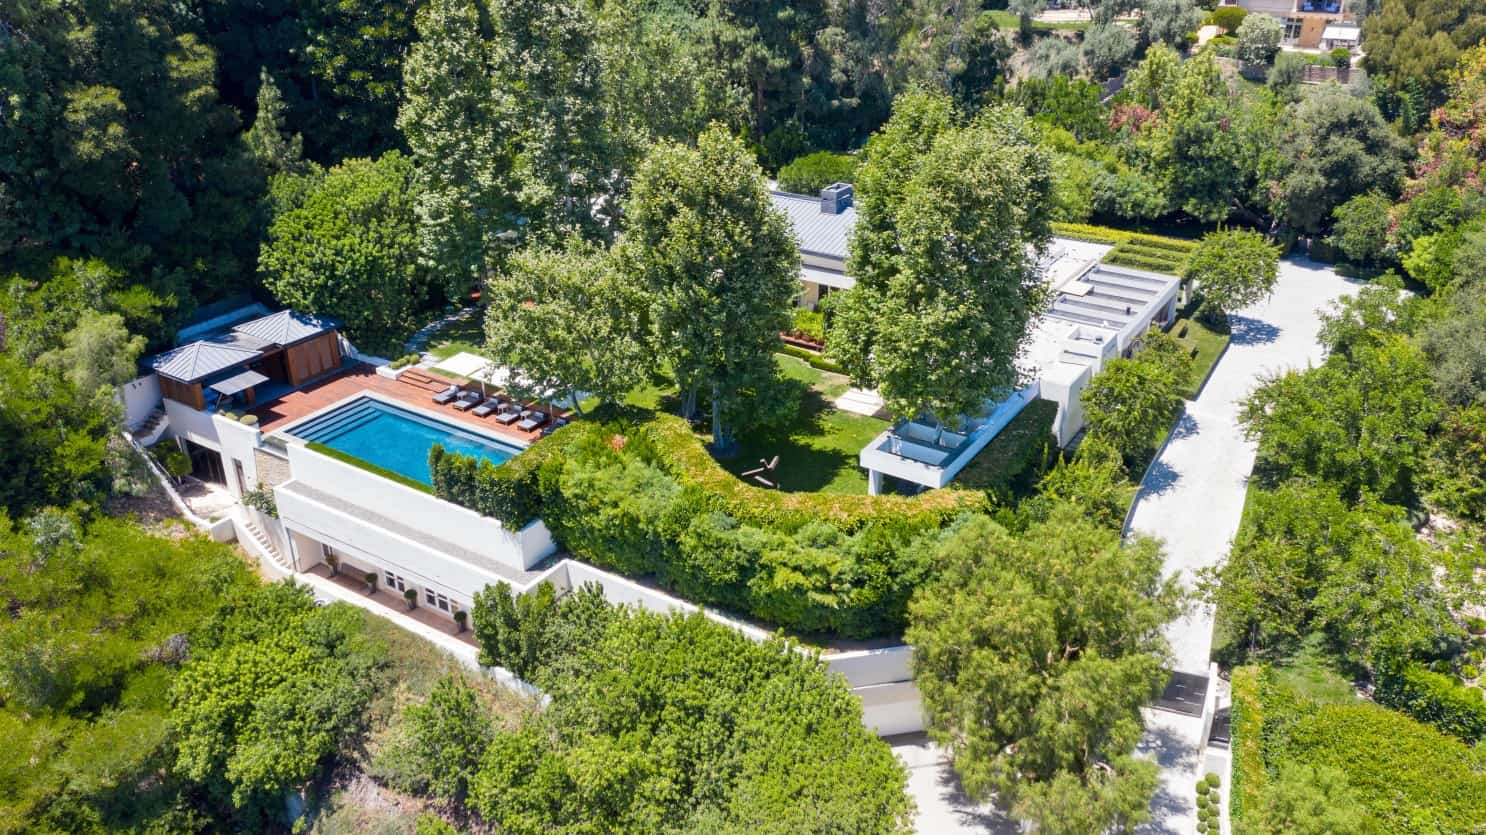 Ryan Seacrest Is Selling His Secluded Beverly Hills Home For $85 Million